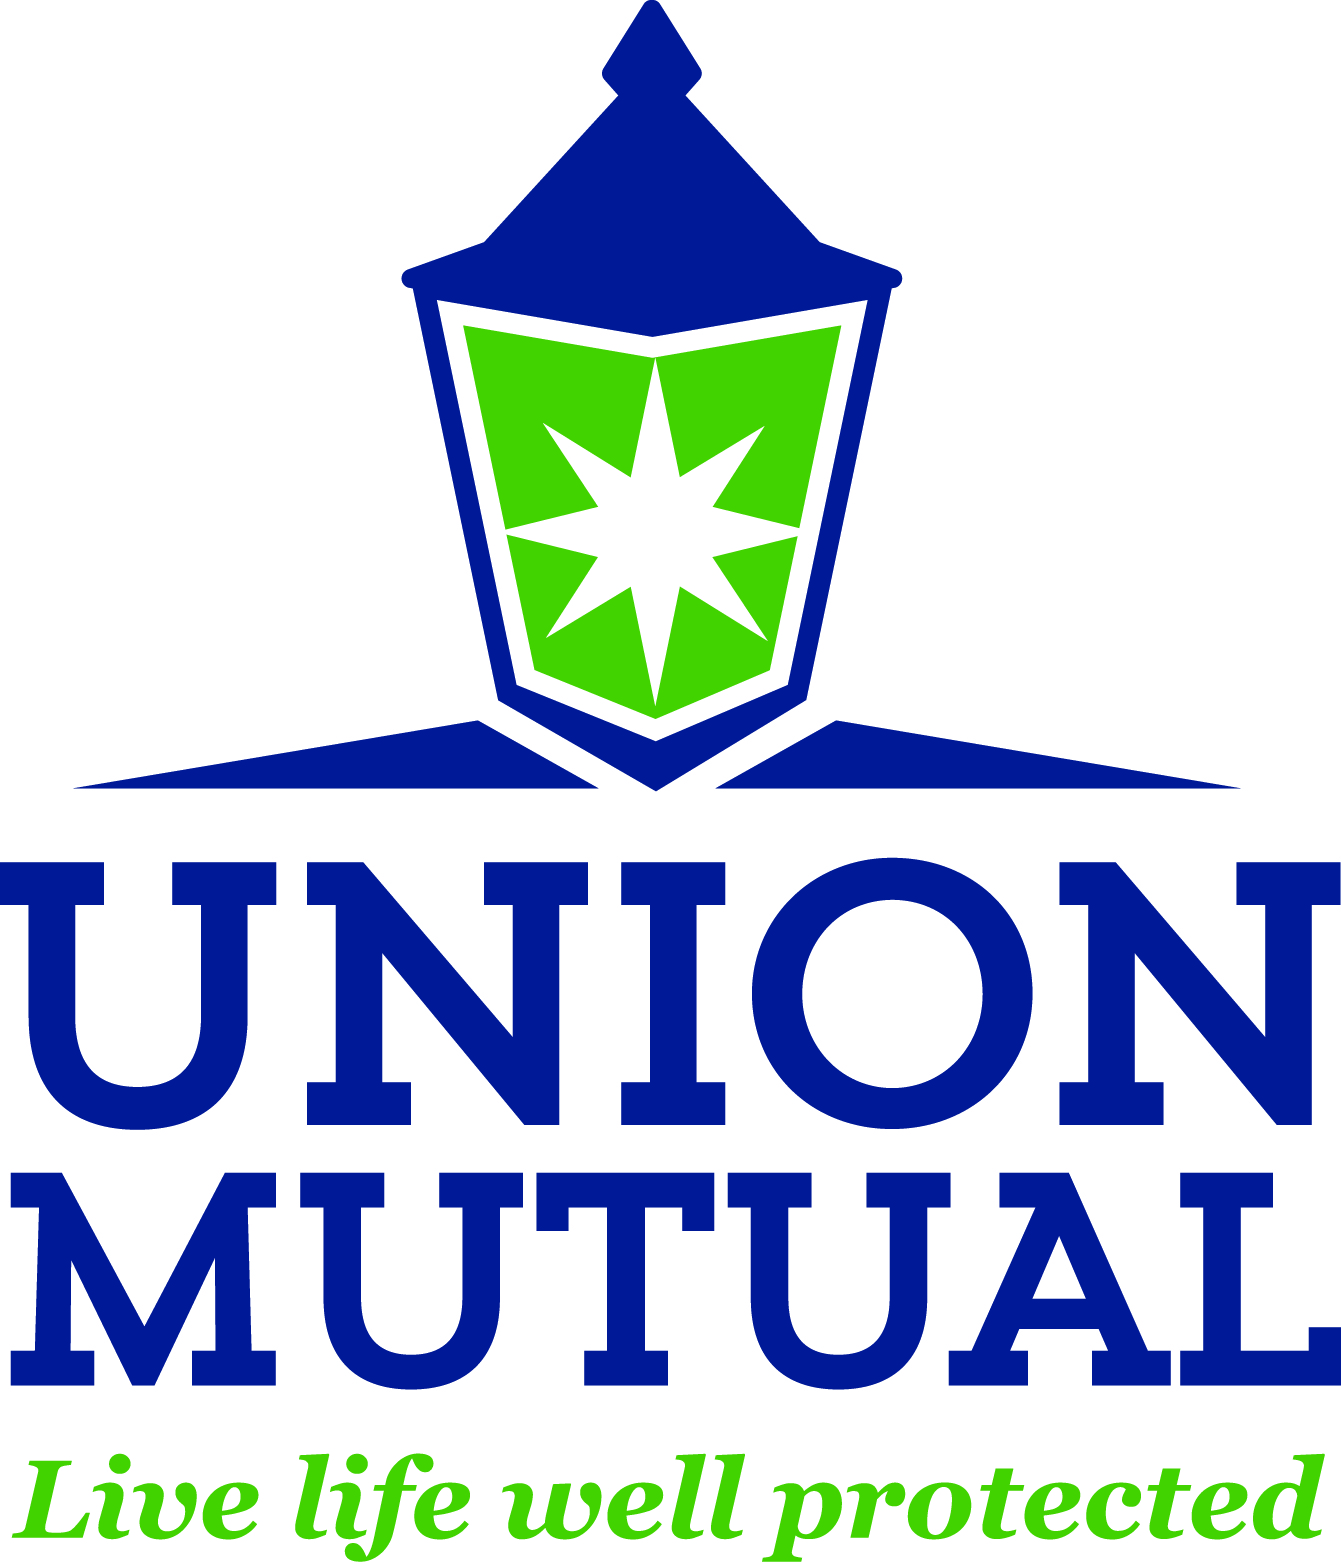 UM_Logo_-_Stack_with_slogan.jpg